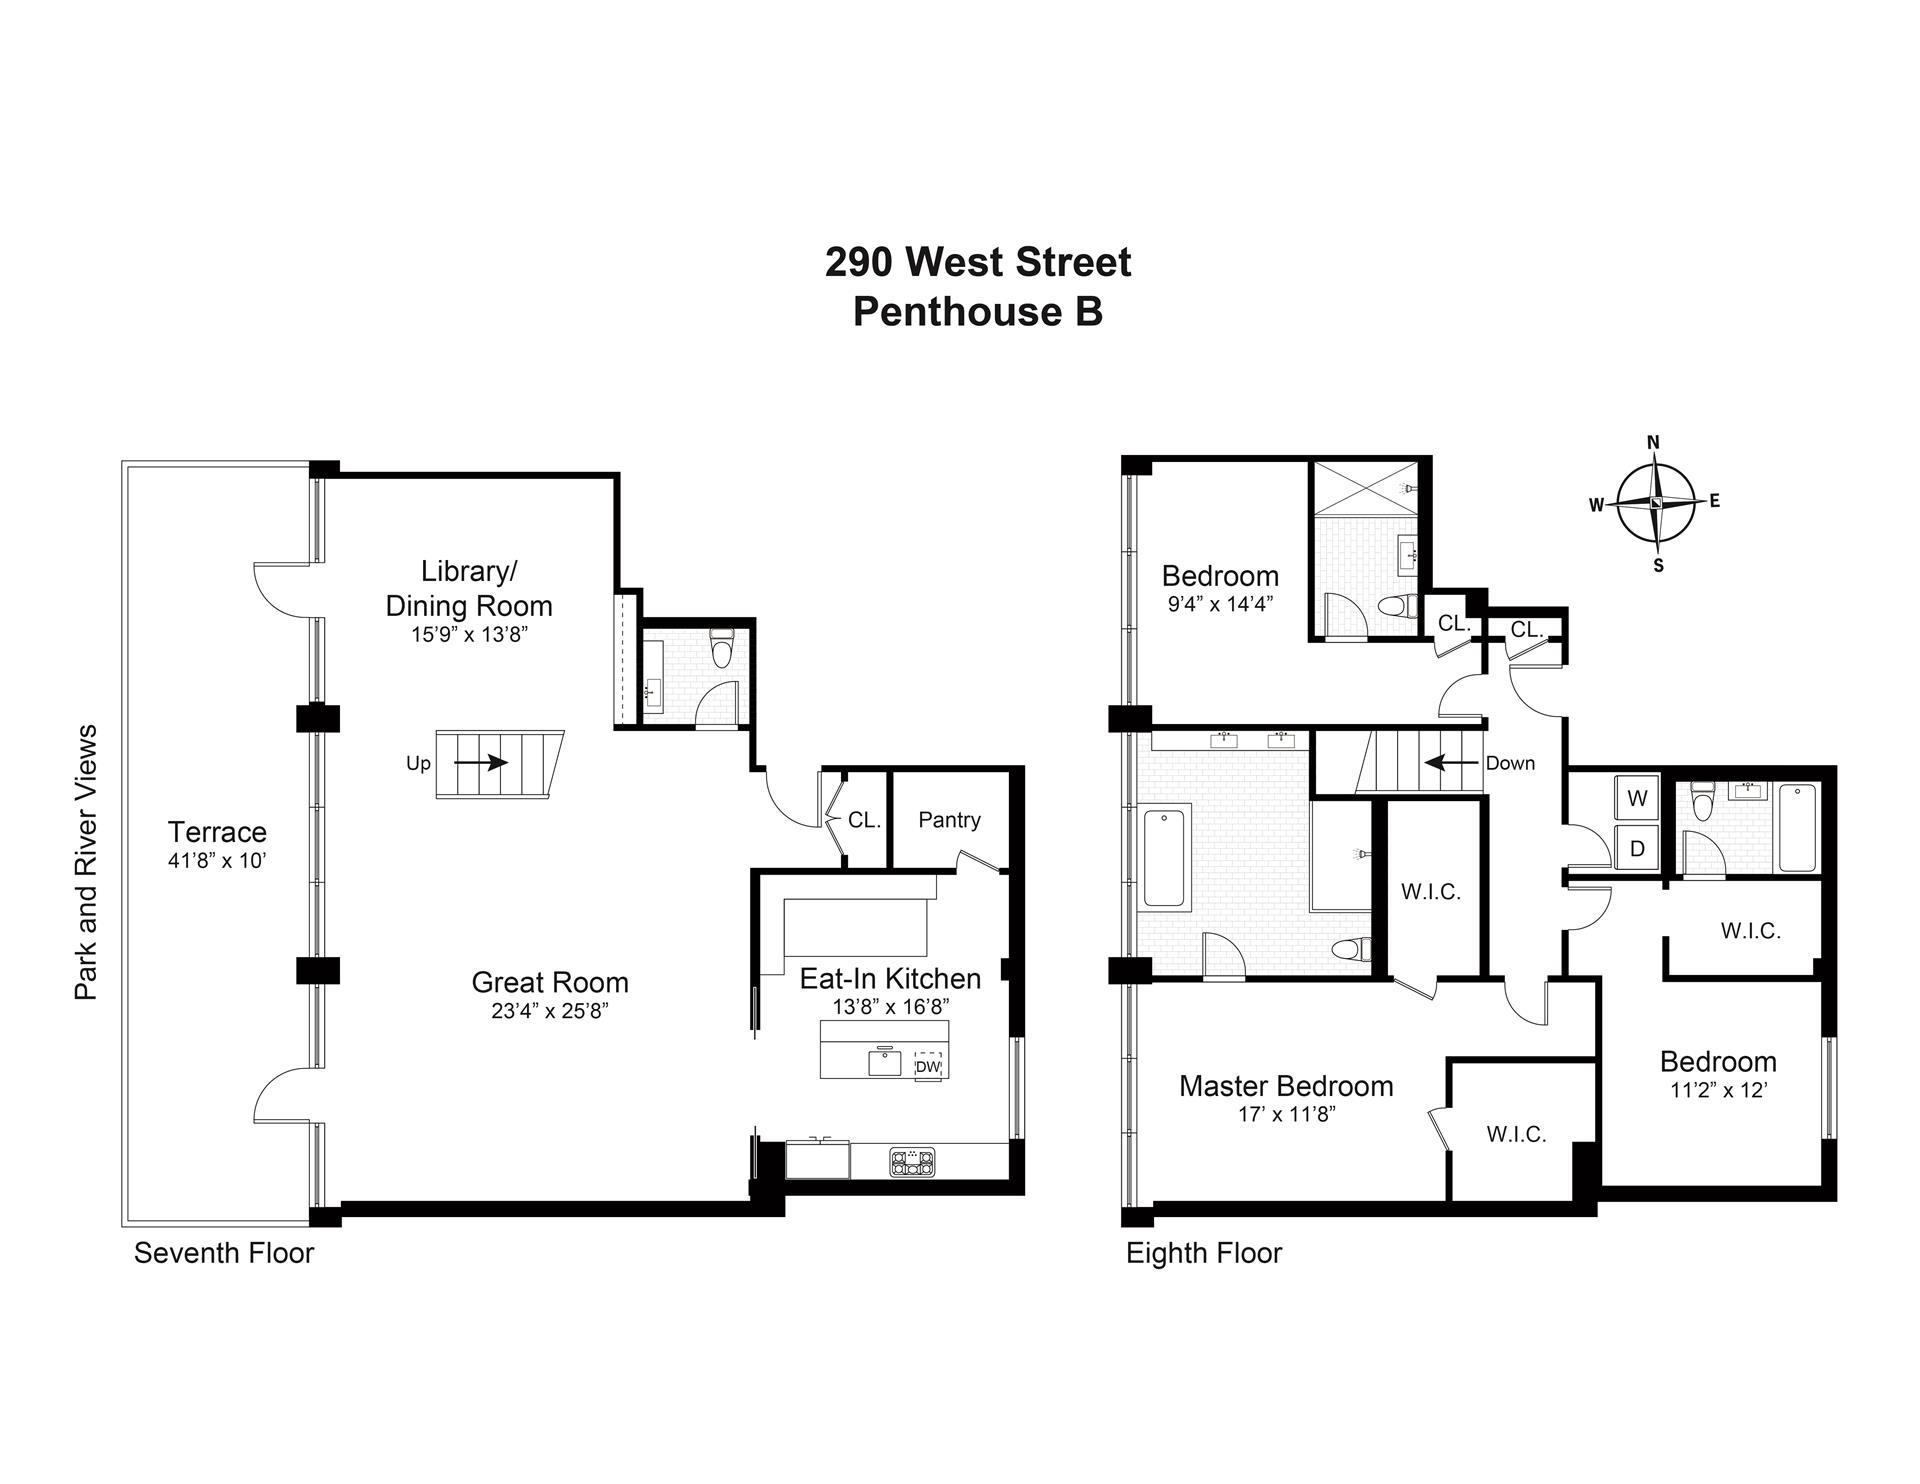 Floor plan of 290 West St, PHB - TriBeCa, New York